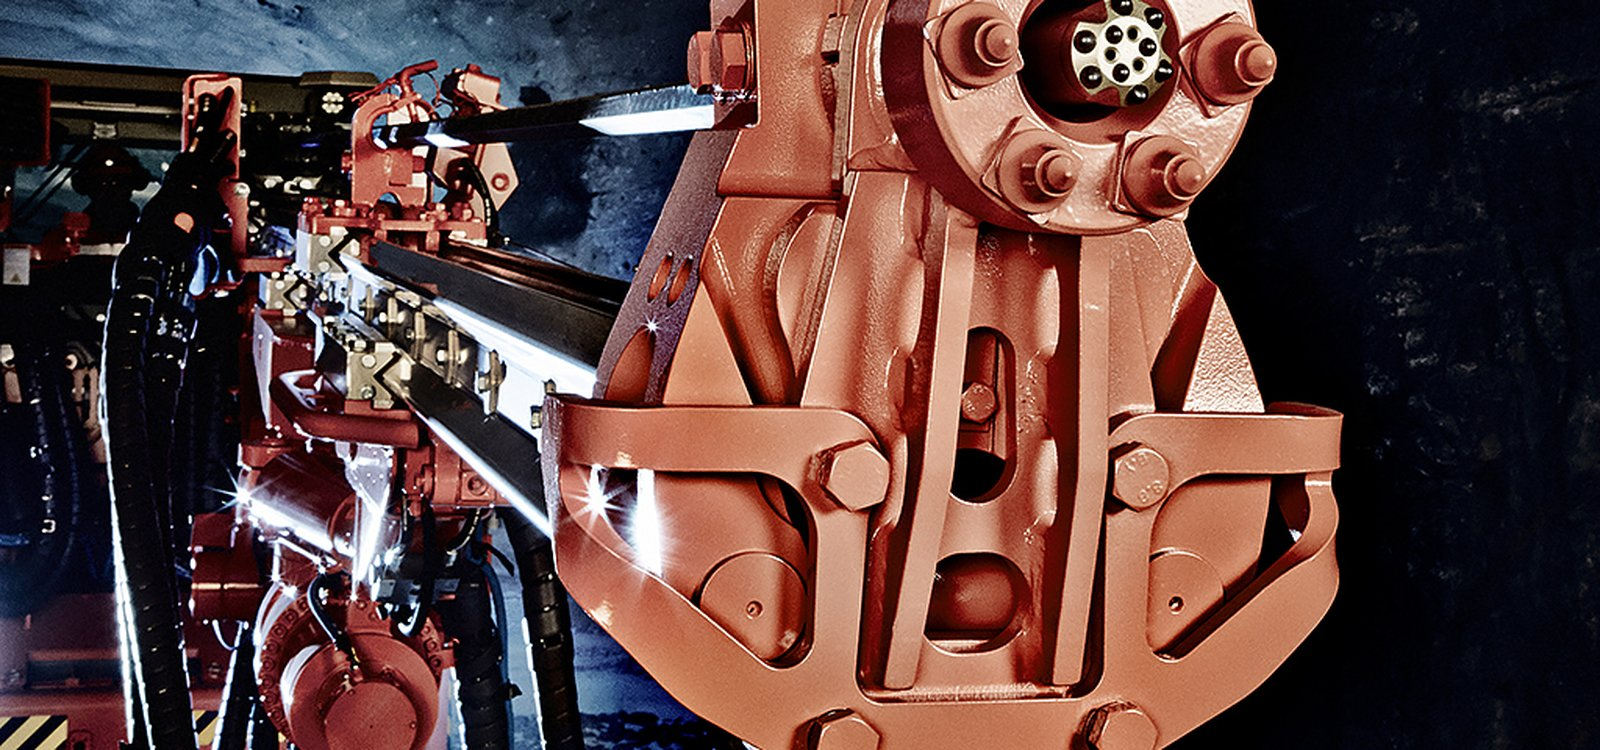 Sandvik DD422i is the first release in the company's upcoming generation of advanced underground drill rigs.